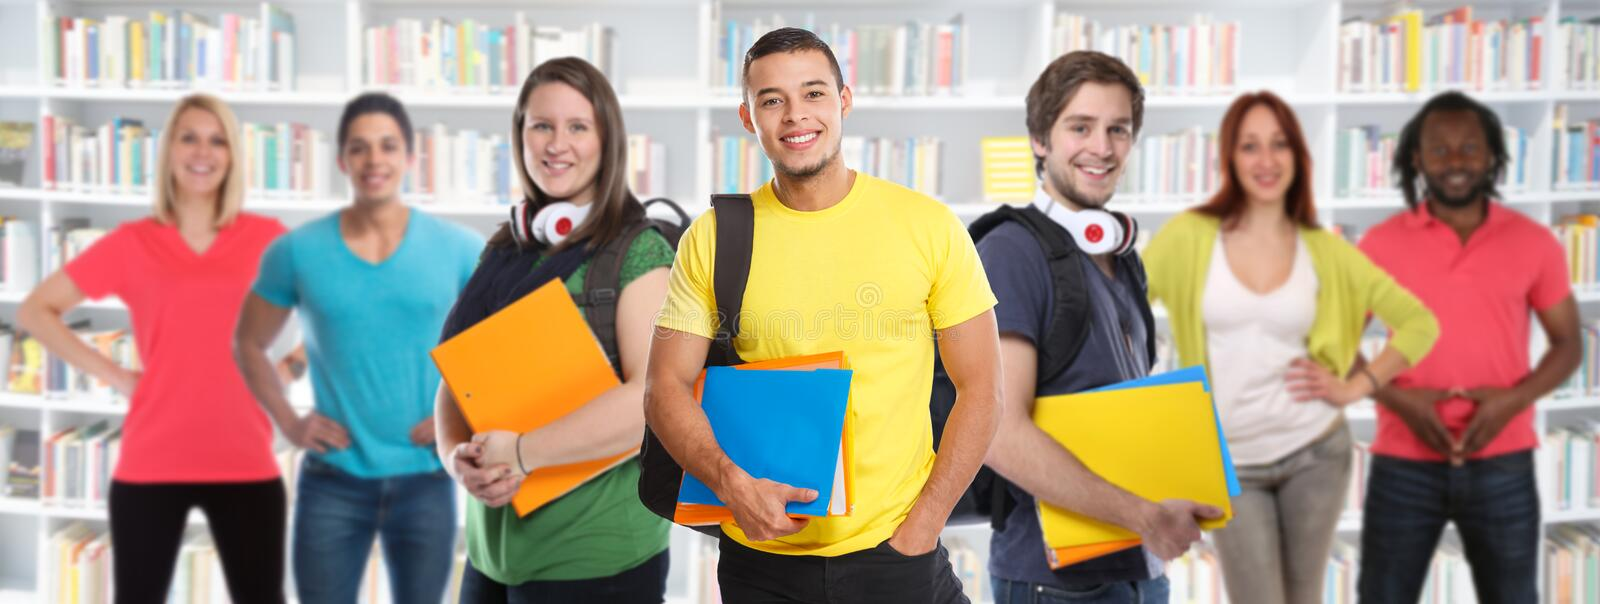 Group of students college student young people studies library learning banner education smiling happy royalty free stock images